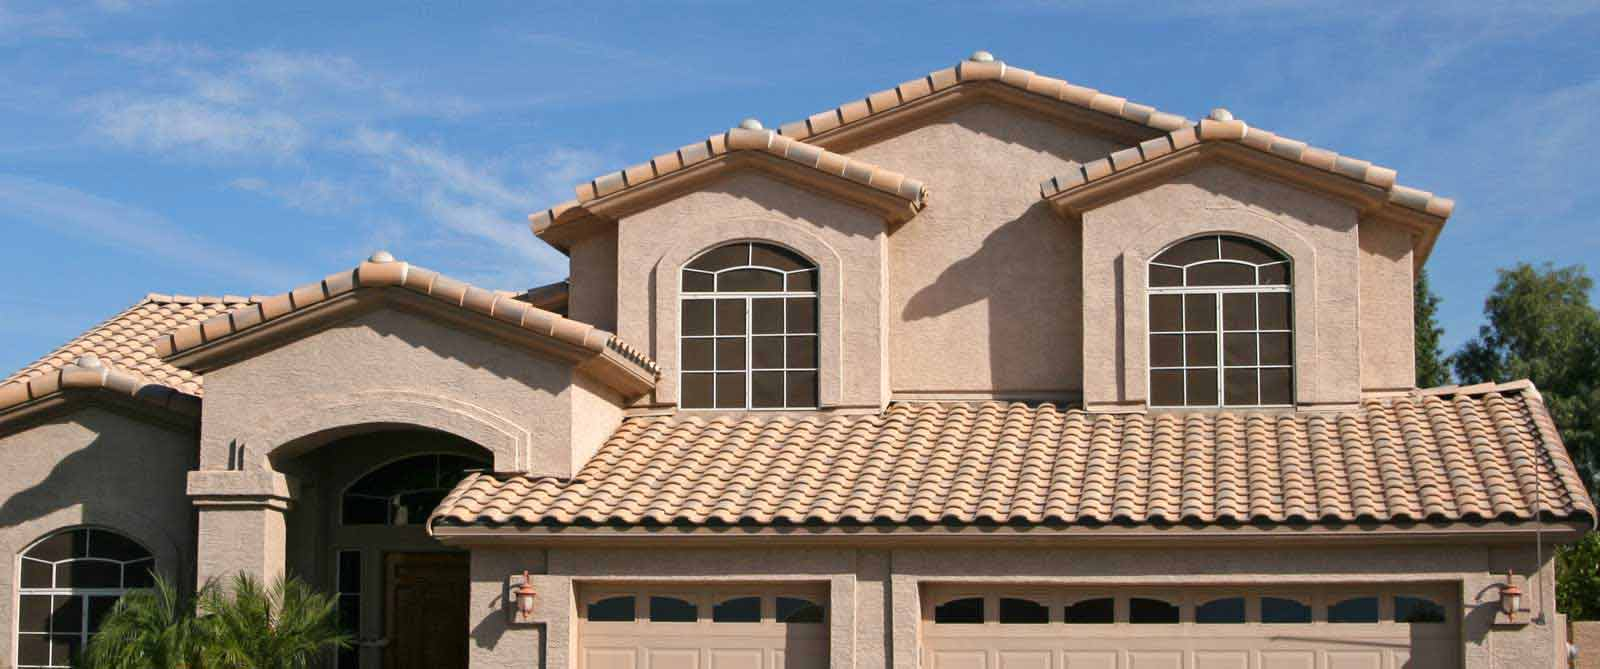 7 Popular Siding Materials To Consider: Roofing Contractors